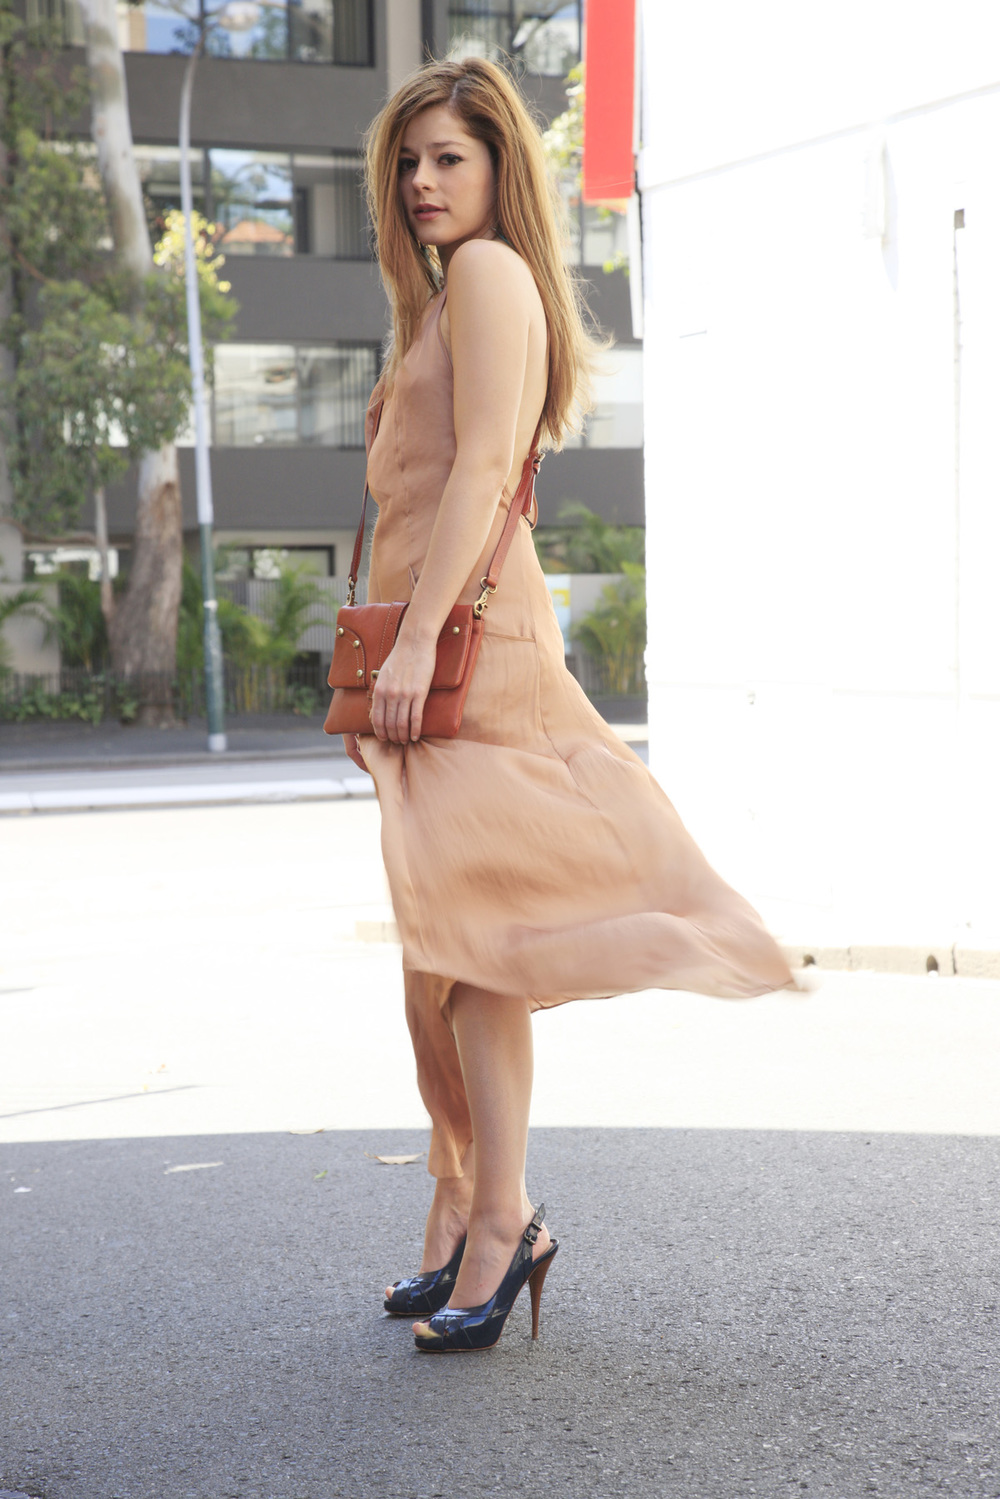 Dress: ZARA Earrings: BLEAK Designs Shoes: Fendi Bag: Mulberry